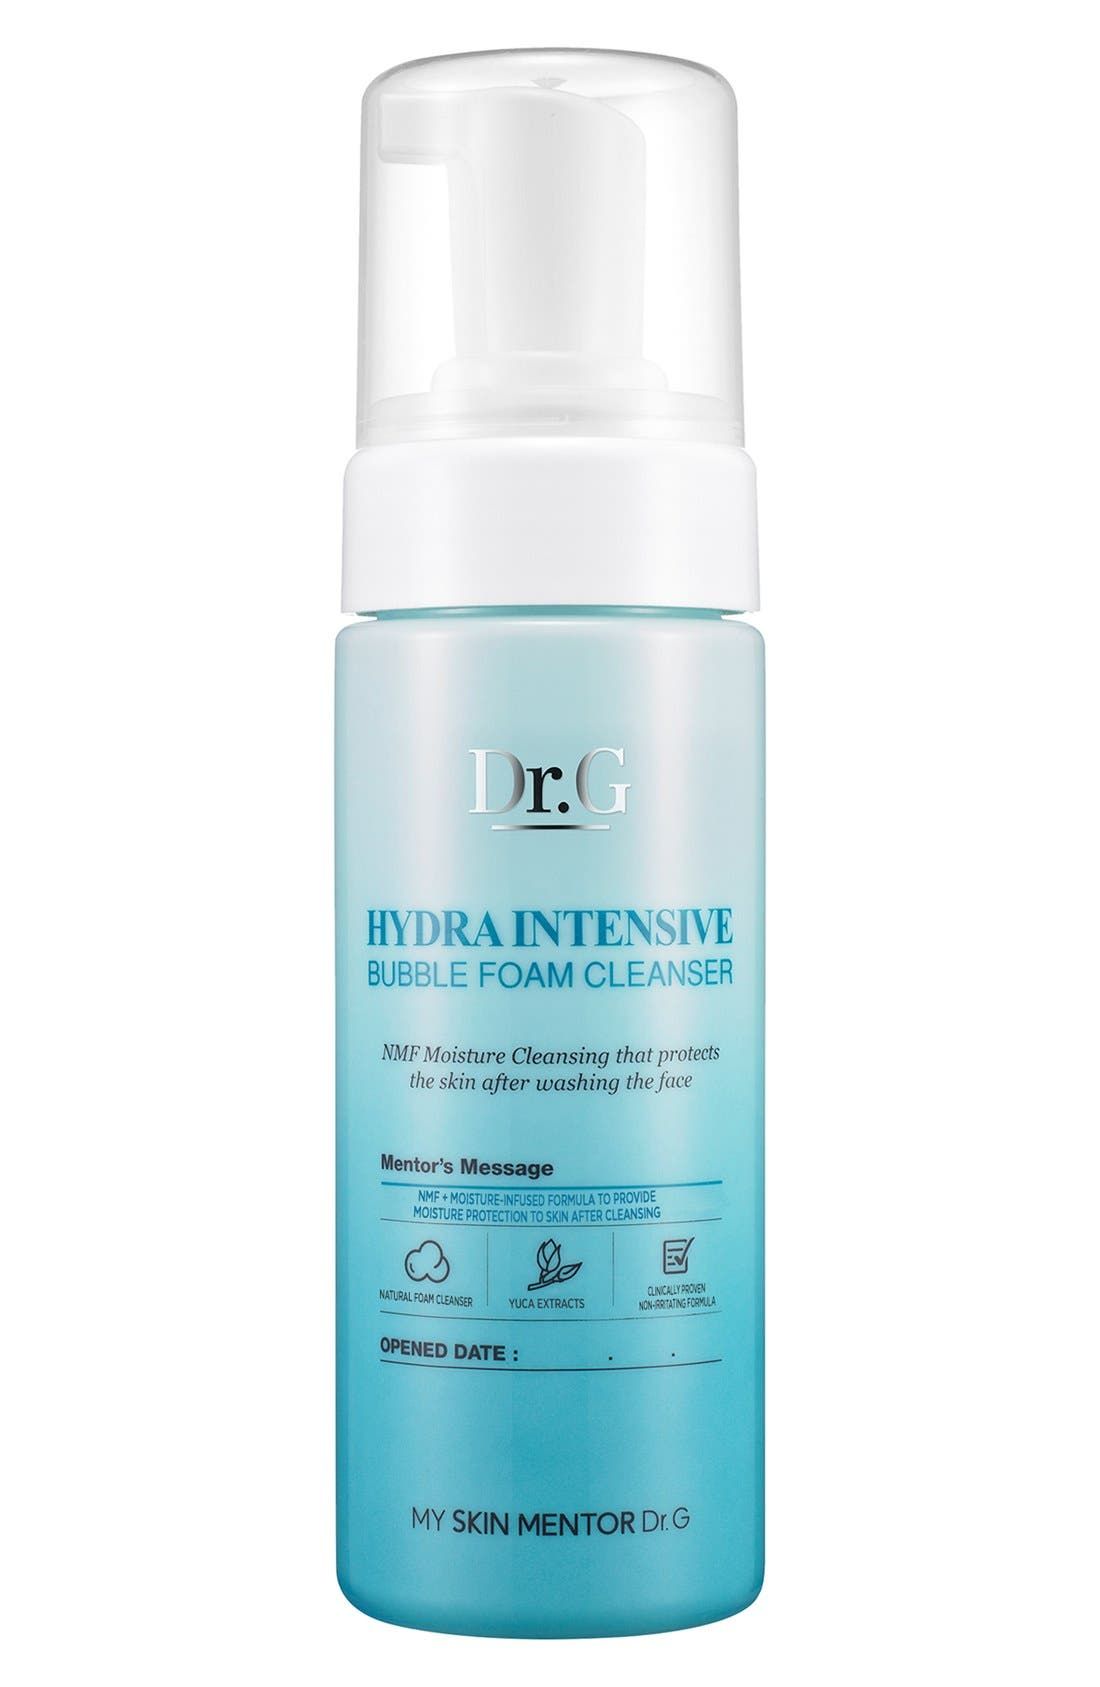 My Skin Mentor Dr. G Beauty Hydra Intensive Bubble Foam Cleanser